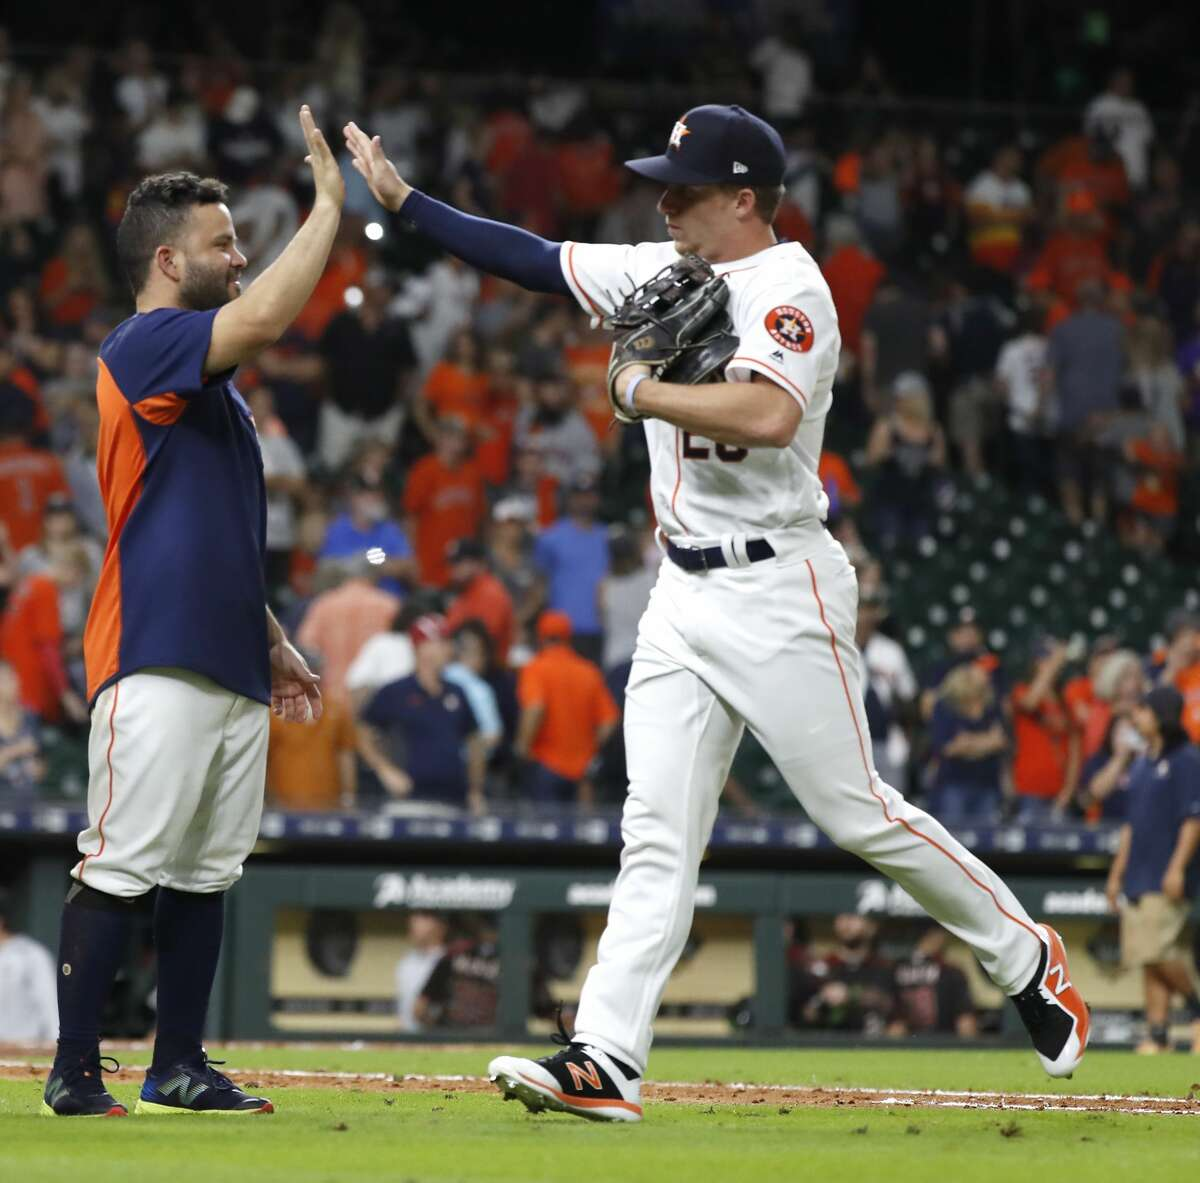 Houston Astros Jose Altuve (27) celebrated with Myles Straw after the Astros 10-4 win over the Arizona Diamondbacks during an MLB game at Minute Maid Park, Saturday, September 15, 2018, in Houston.